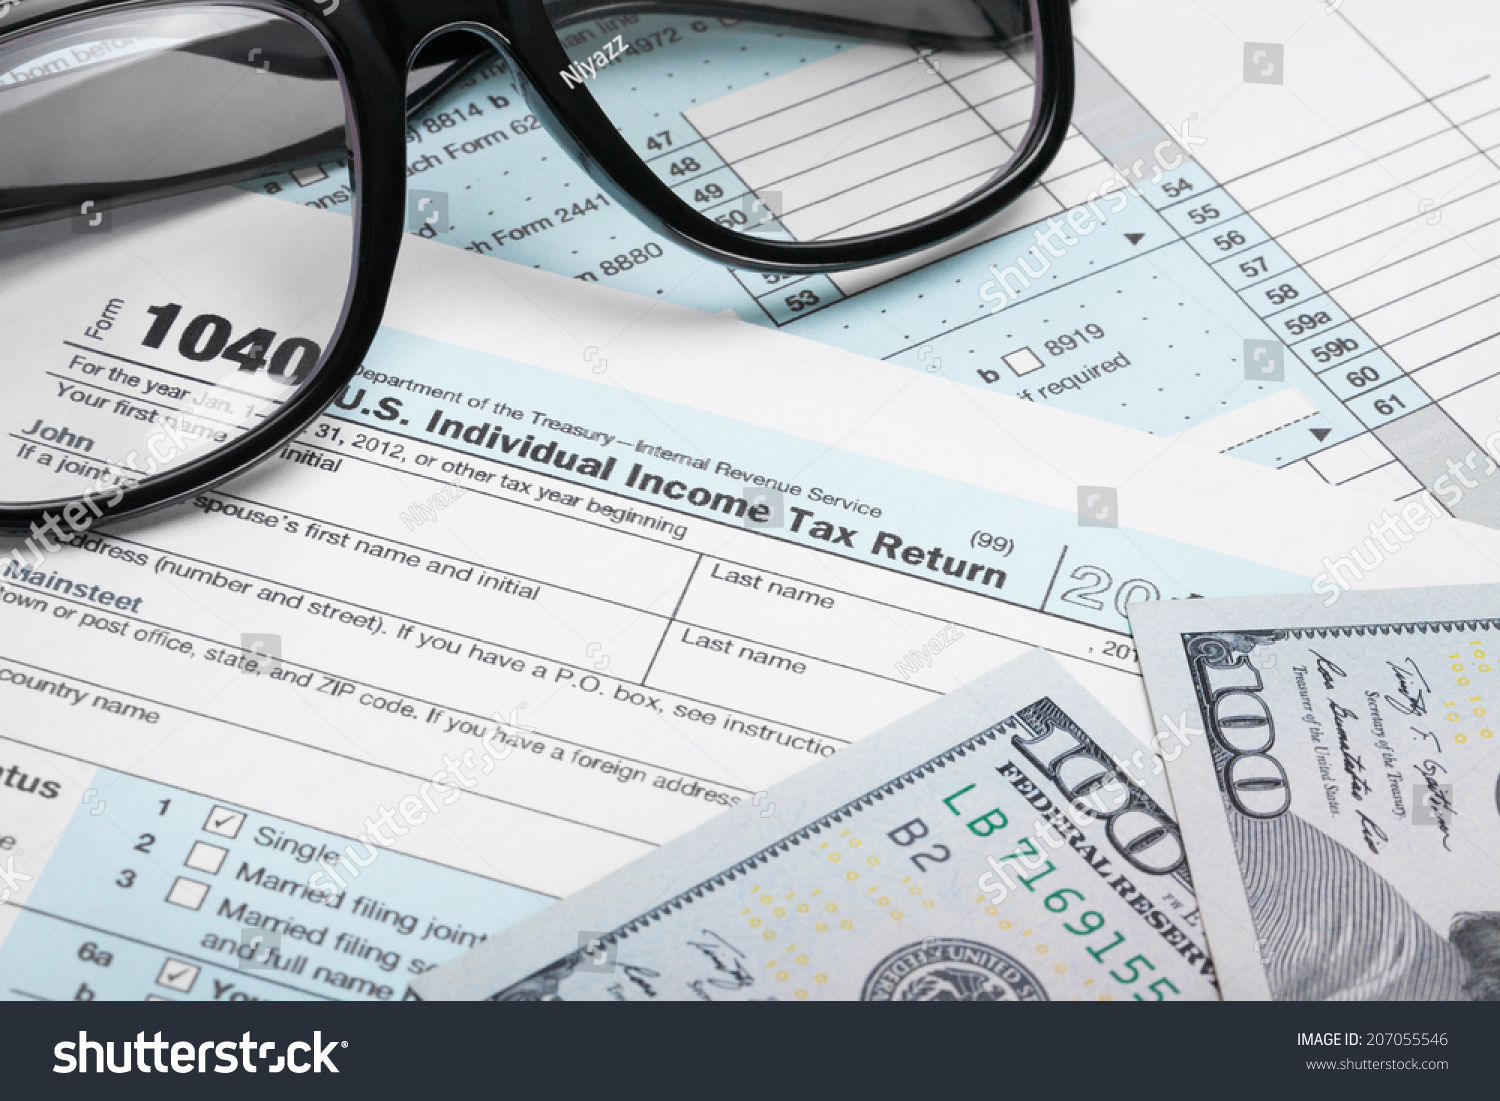 Tax on stock options usa